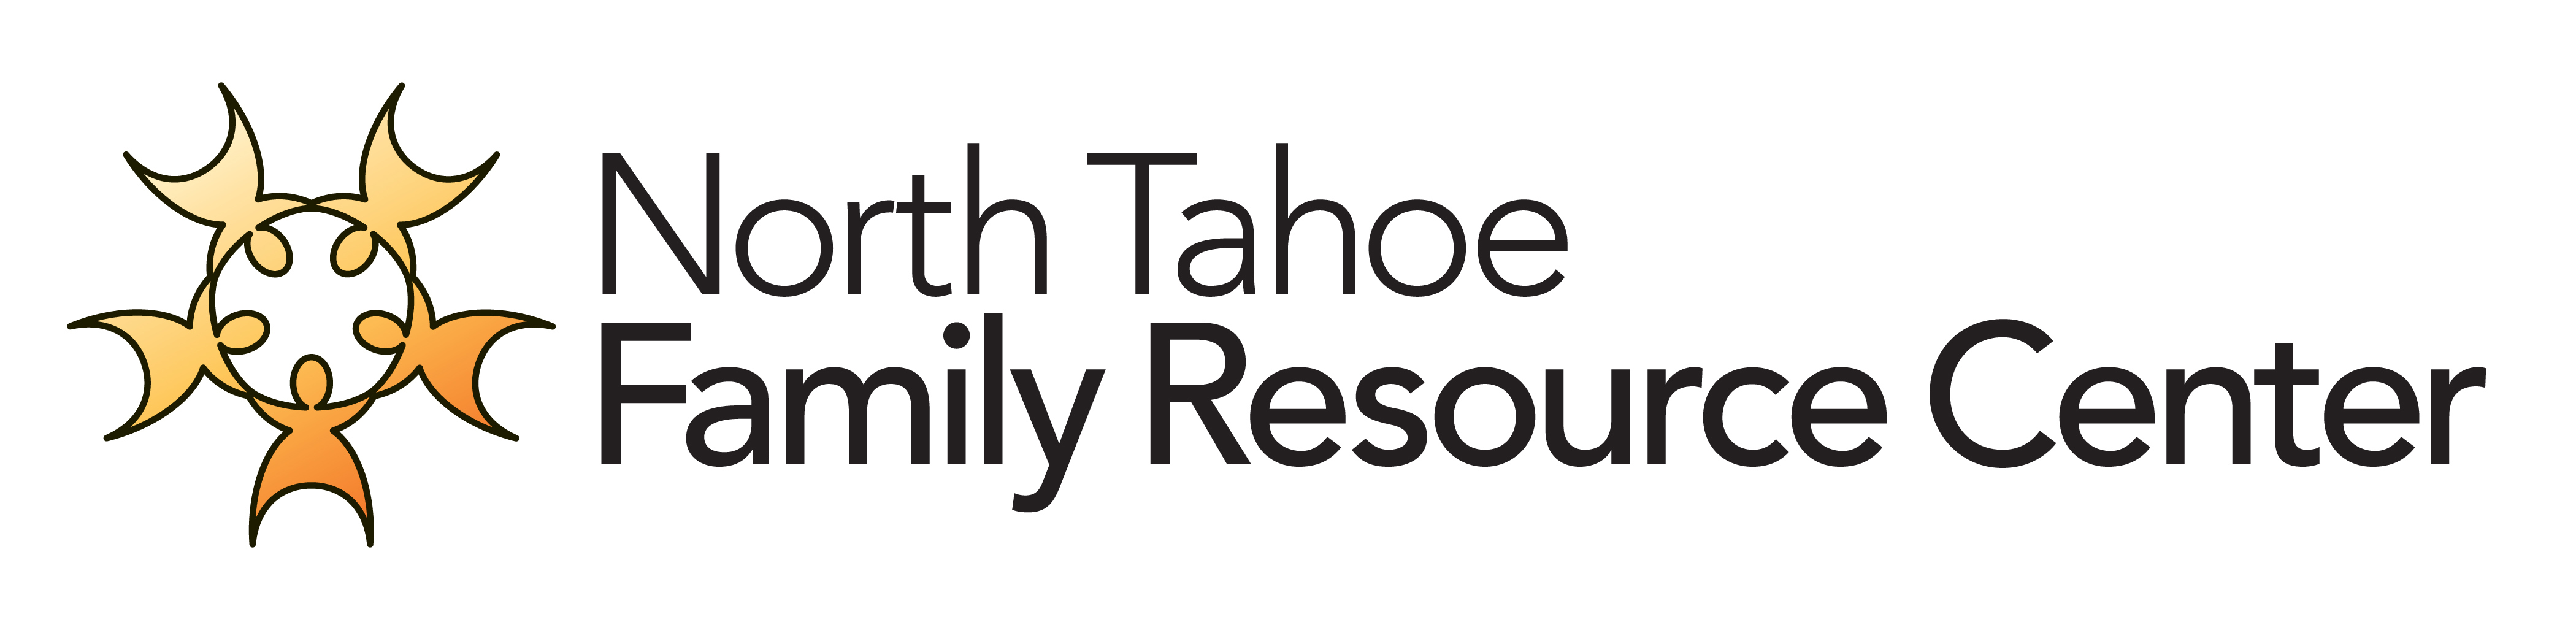 North Tahoe Family Resource Center